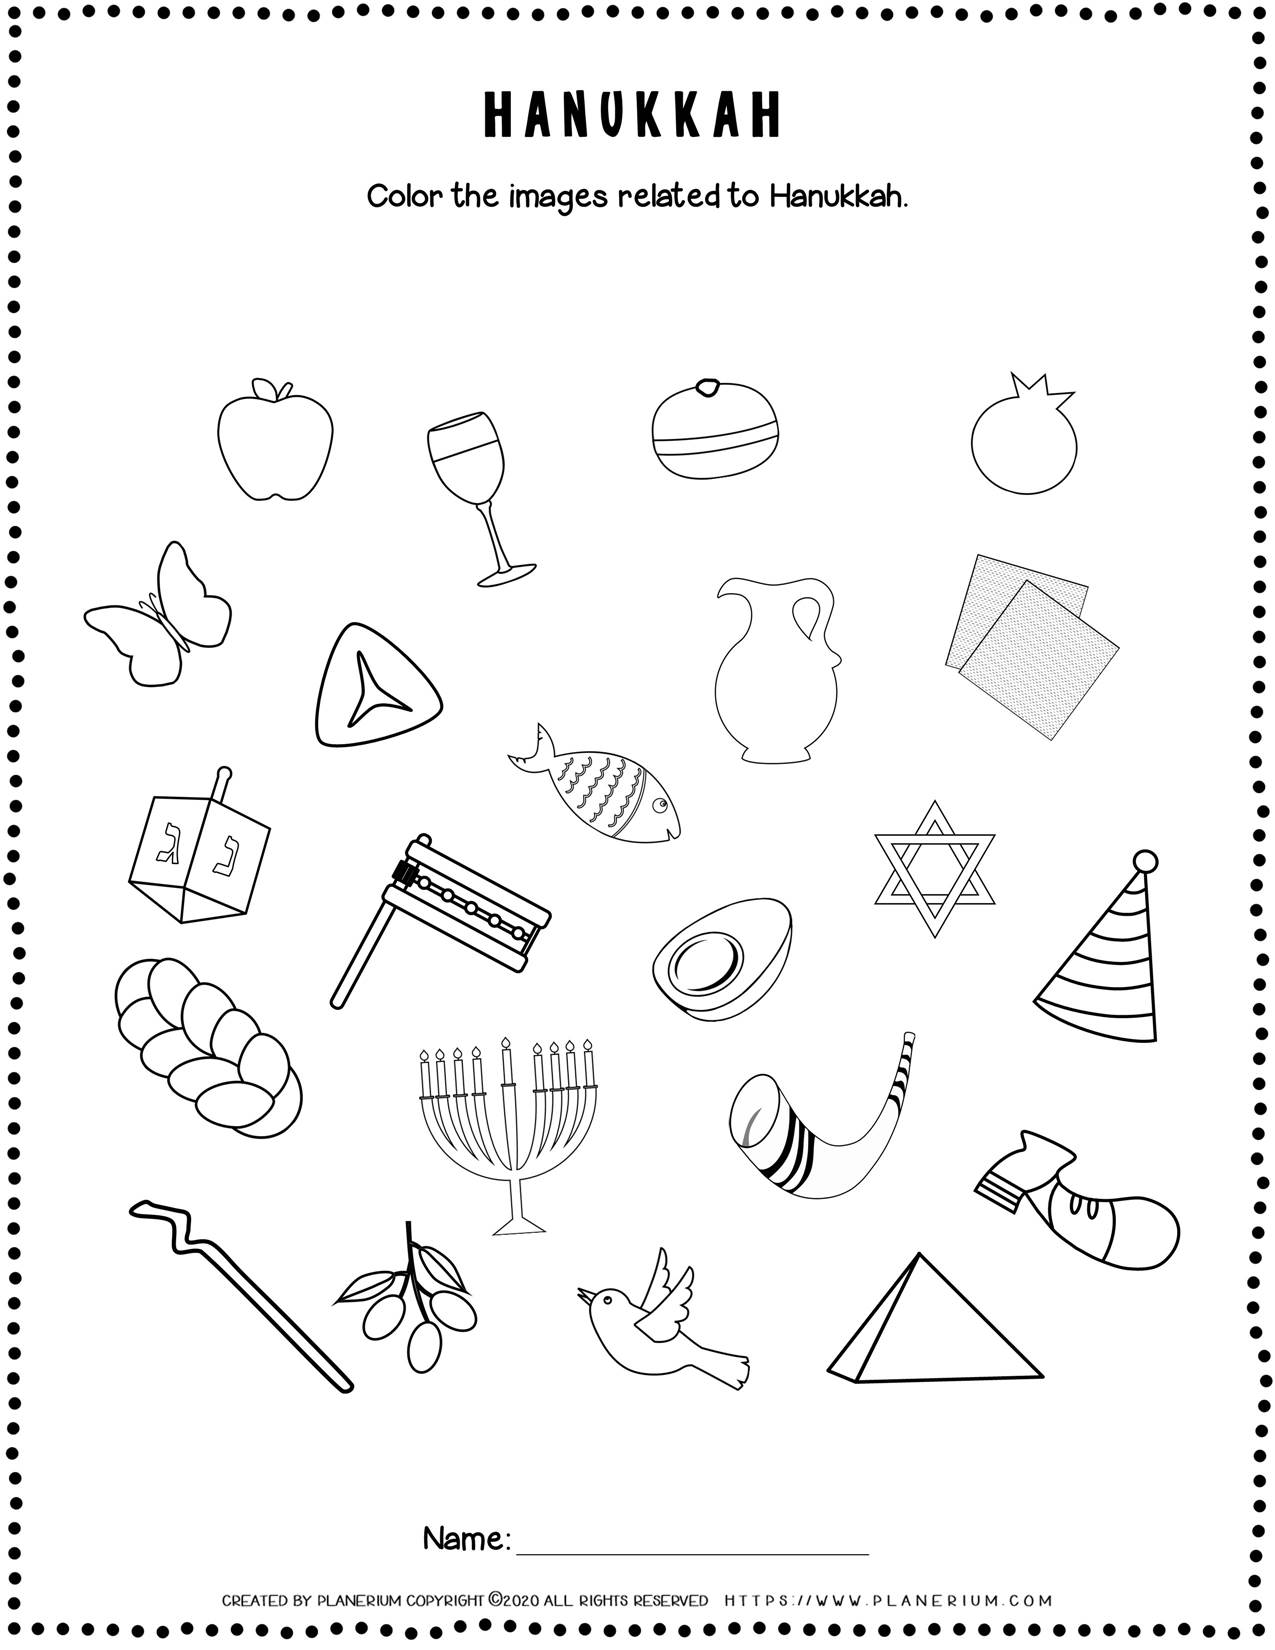 Hanukkah Worksheets - Related Objects - Free Printable | Planerium